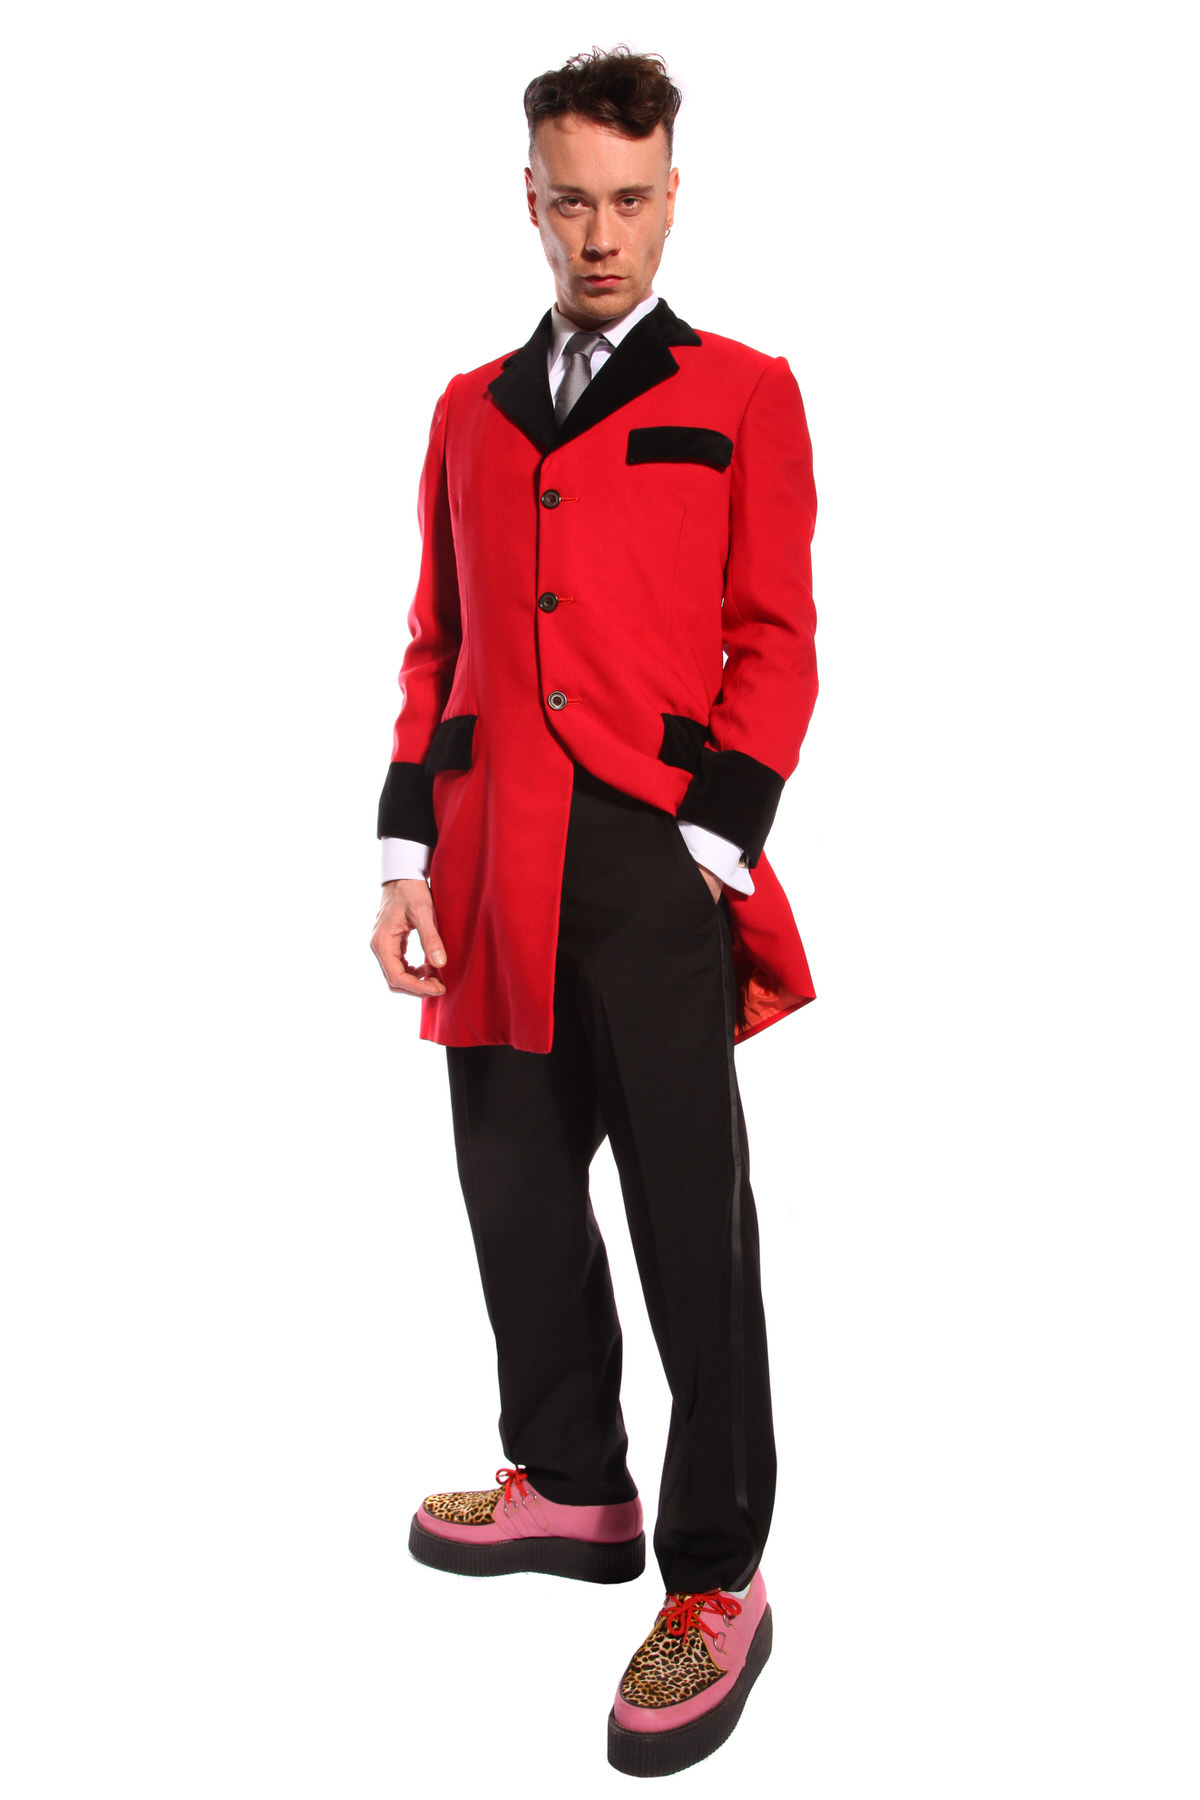 RED AND BLACK TEDDY BOY COSTUME W BROTHEL CREEPERS